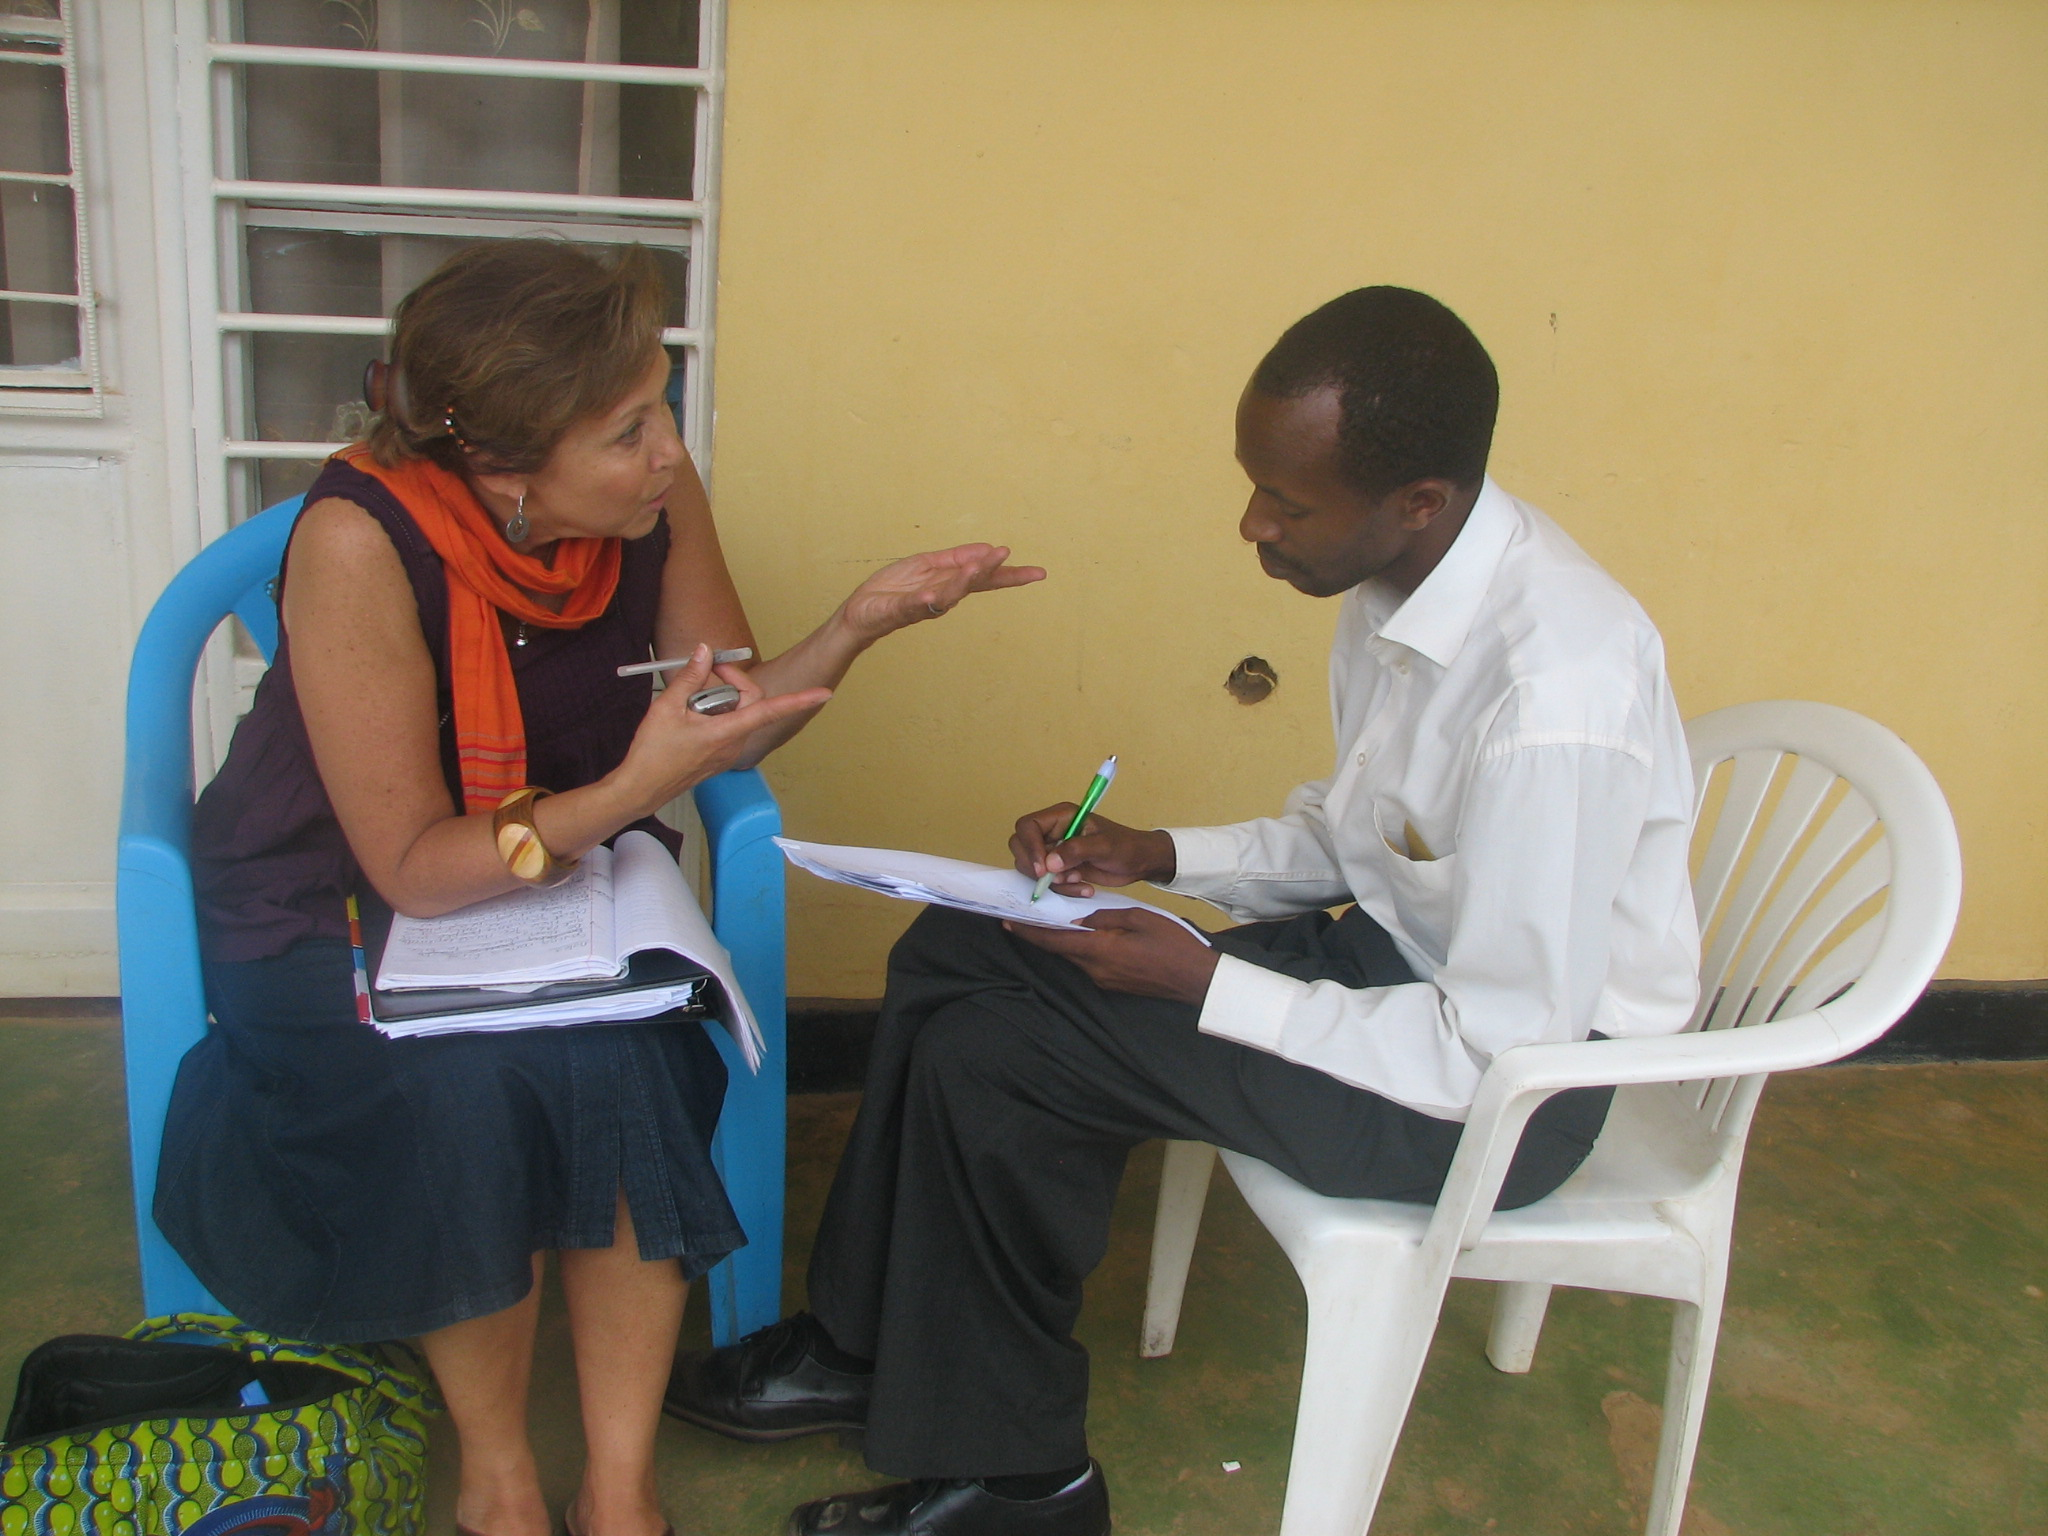 Patricia Pasick, founder of Stories for Hope talks about the project with Kanamugire Theophile, director of a local NGO in Nyamata, Rwanda. Photo courtesy of Patricia Pasick